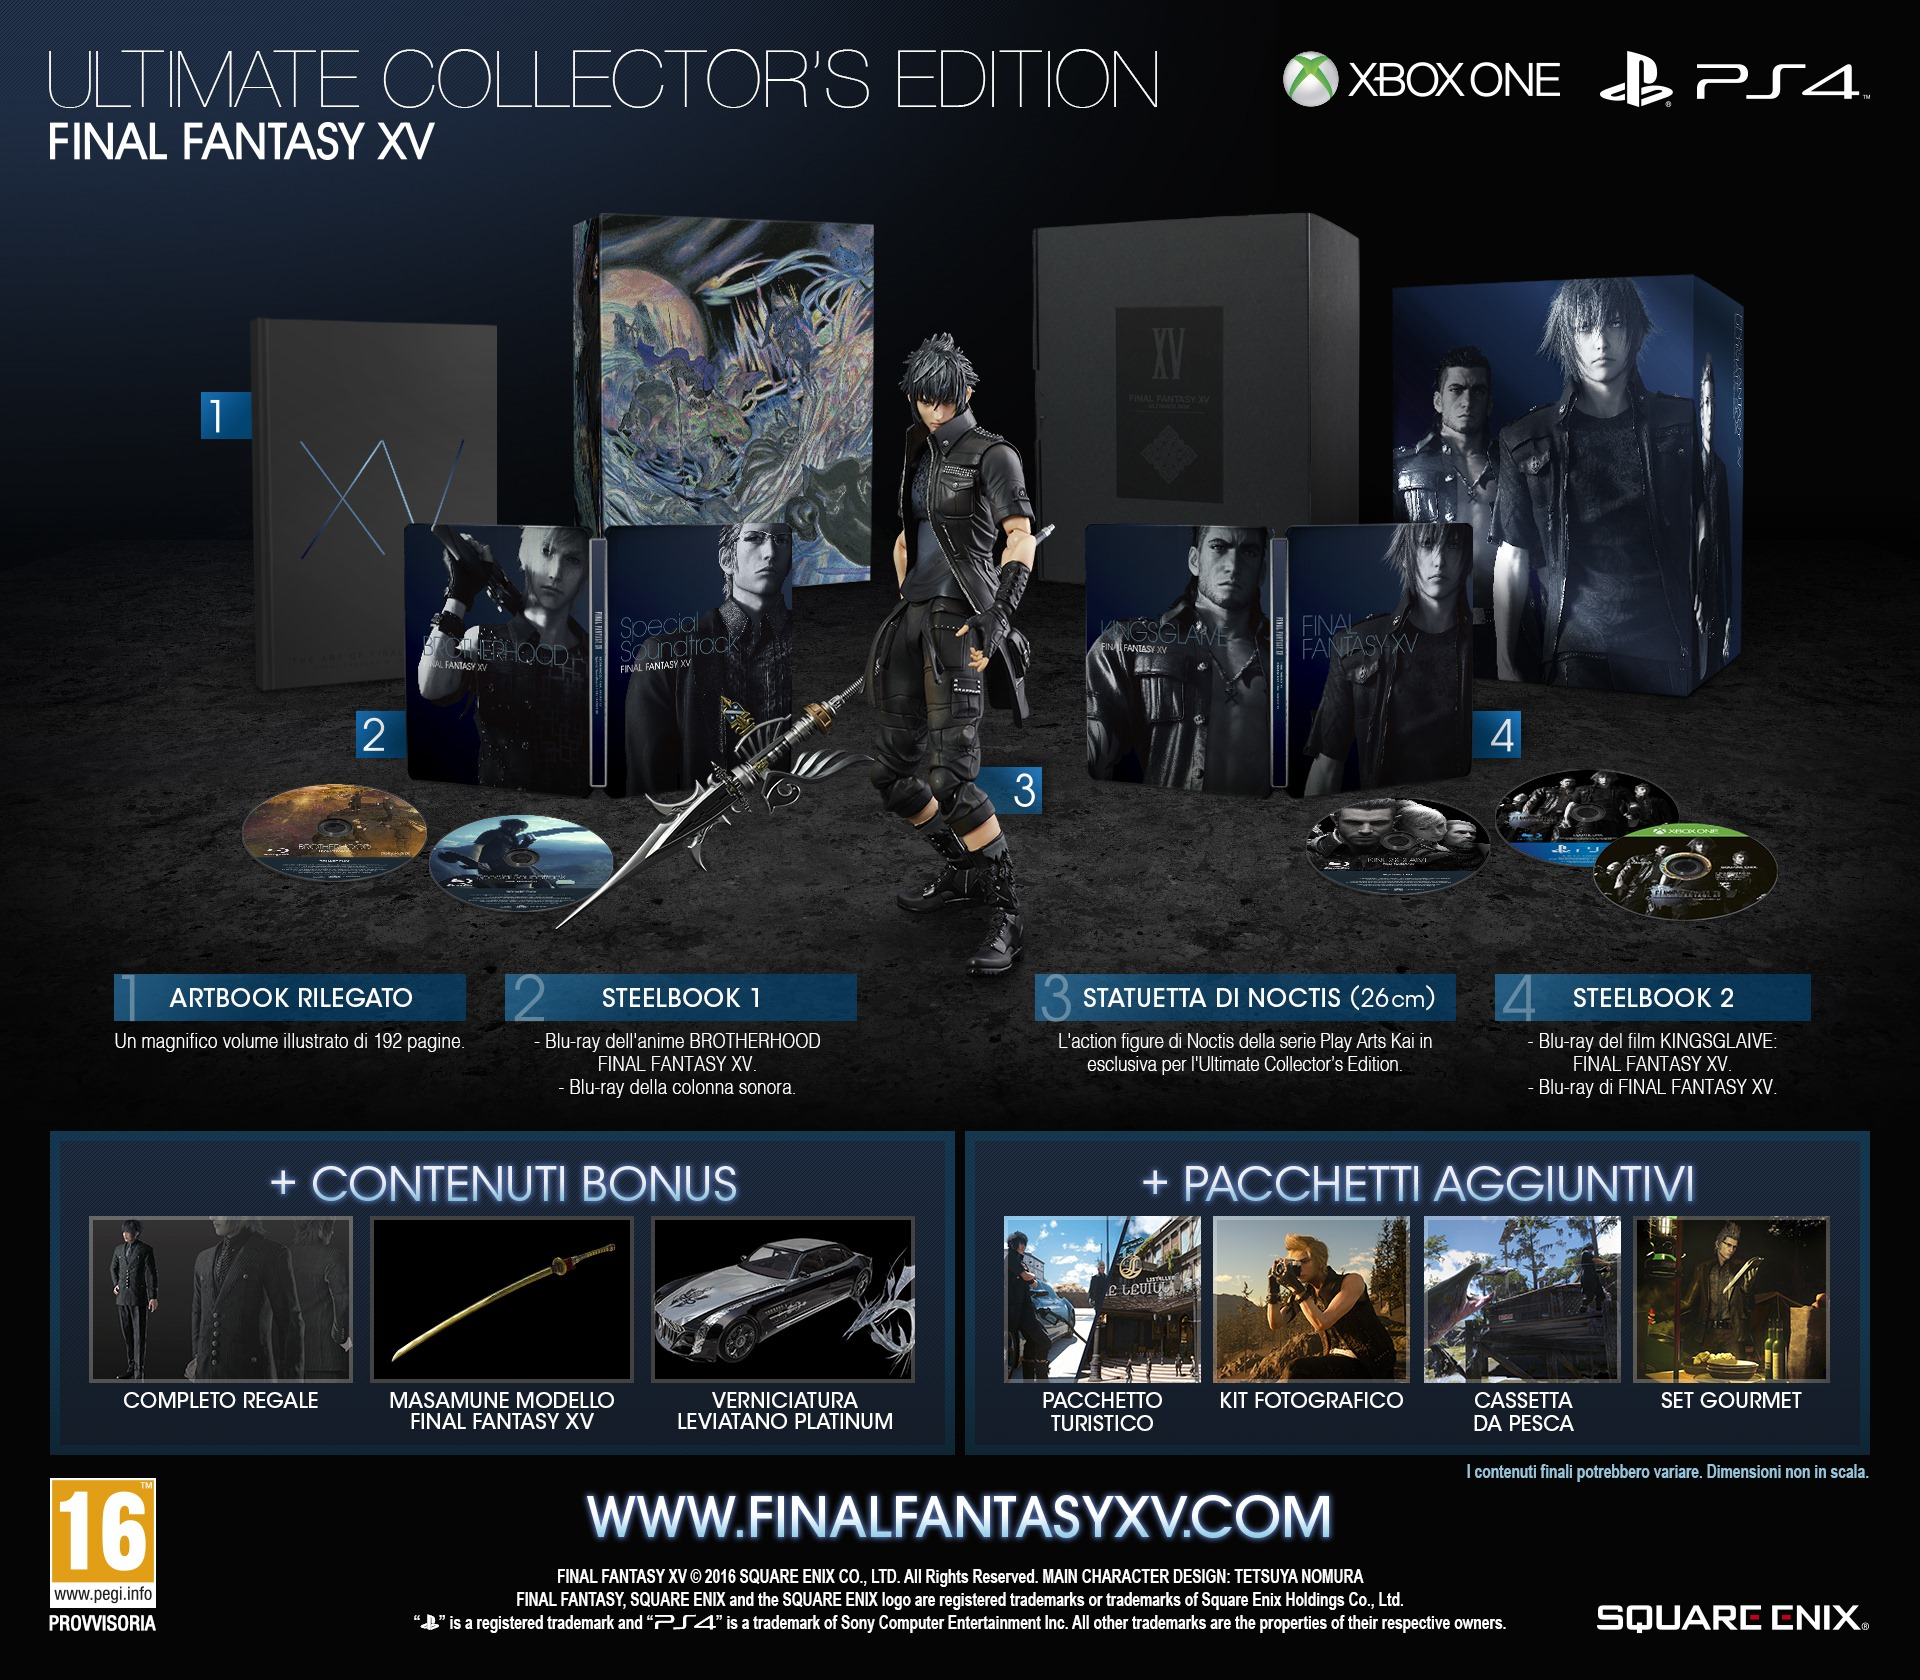 Final Fantasy XV: Ultimate Collector's Edition!